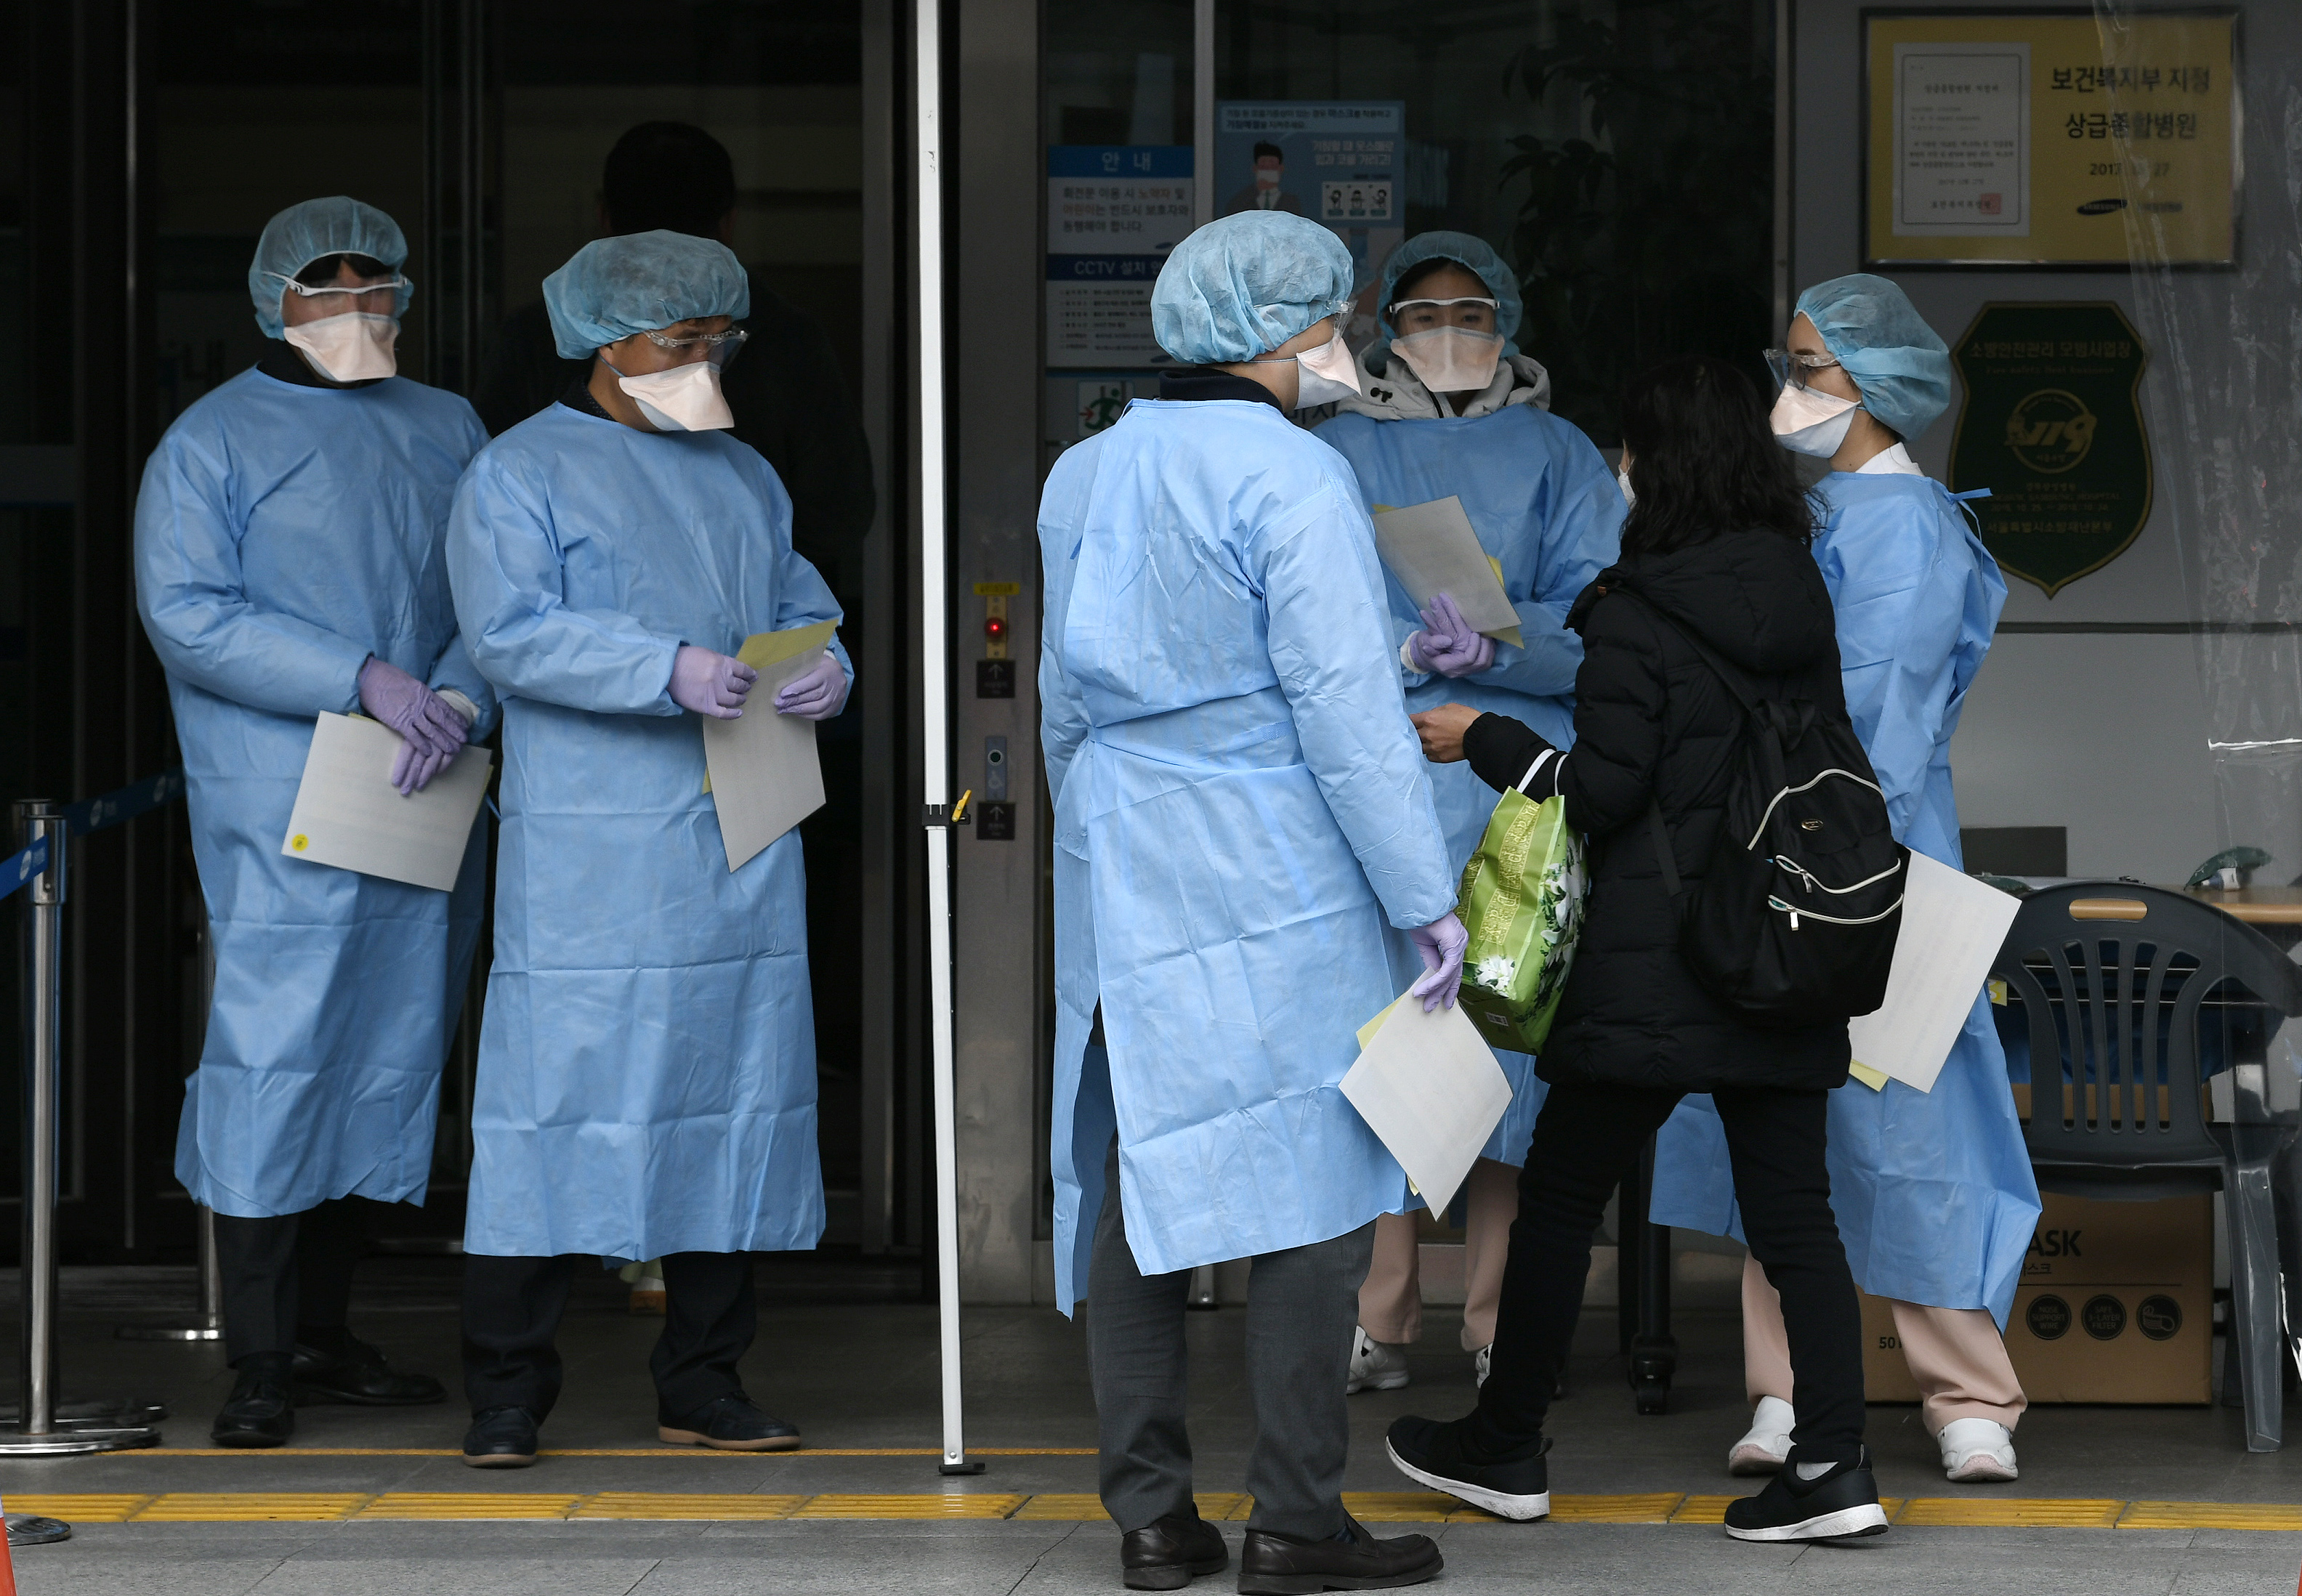 Medical officials in front of a hospital in Seoul on February 4, 2020.